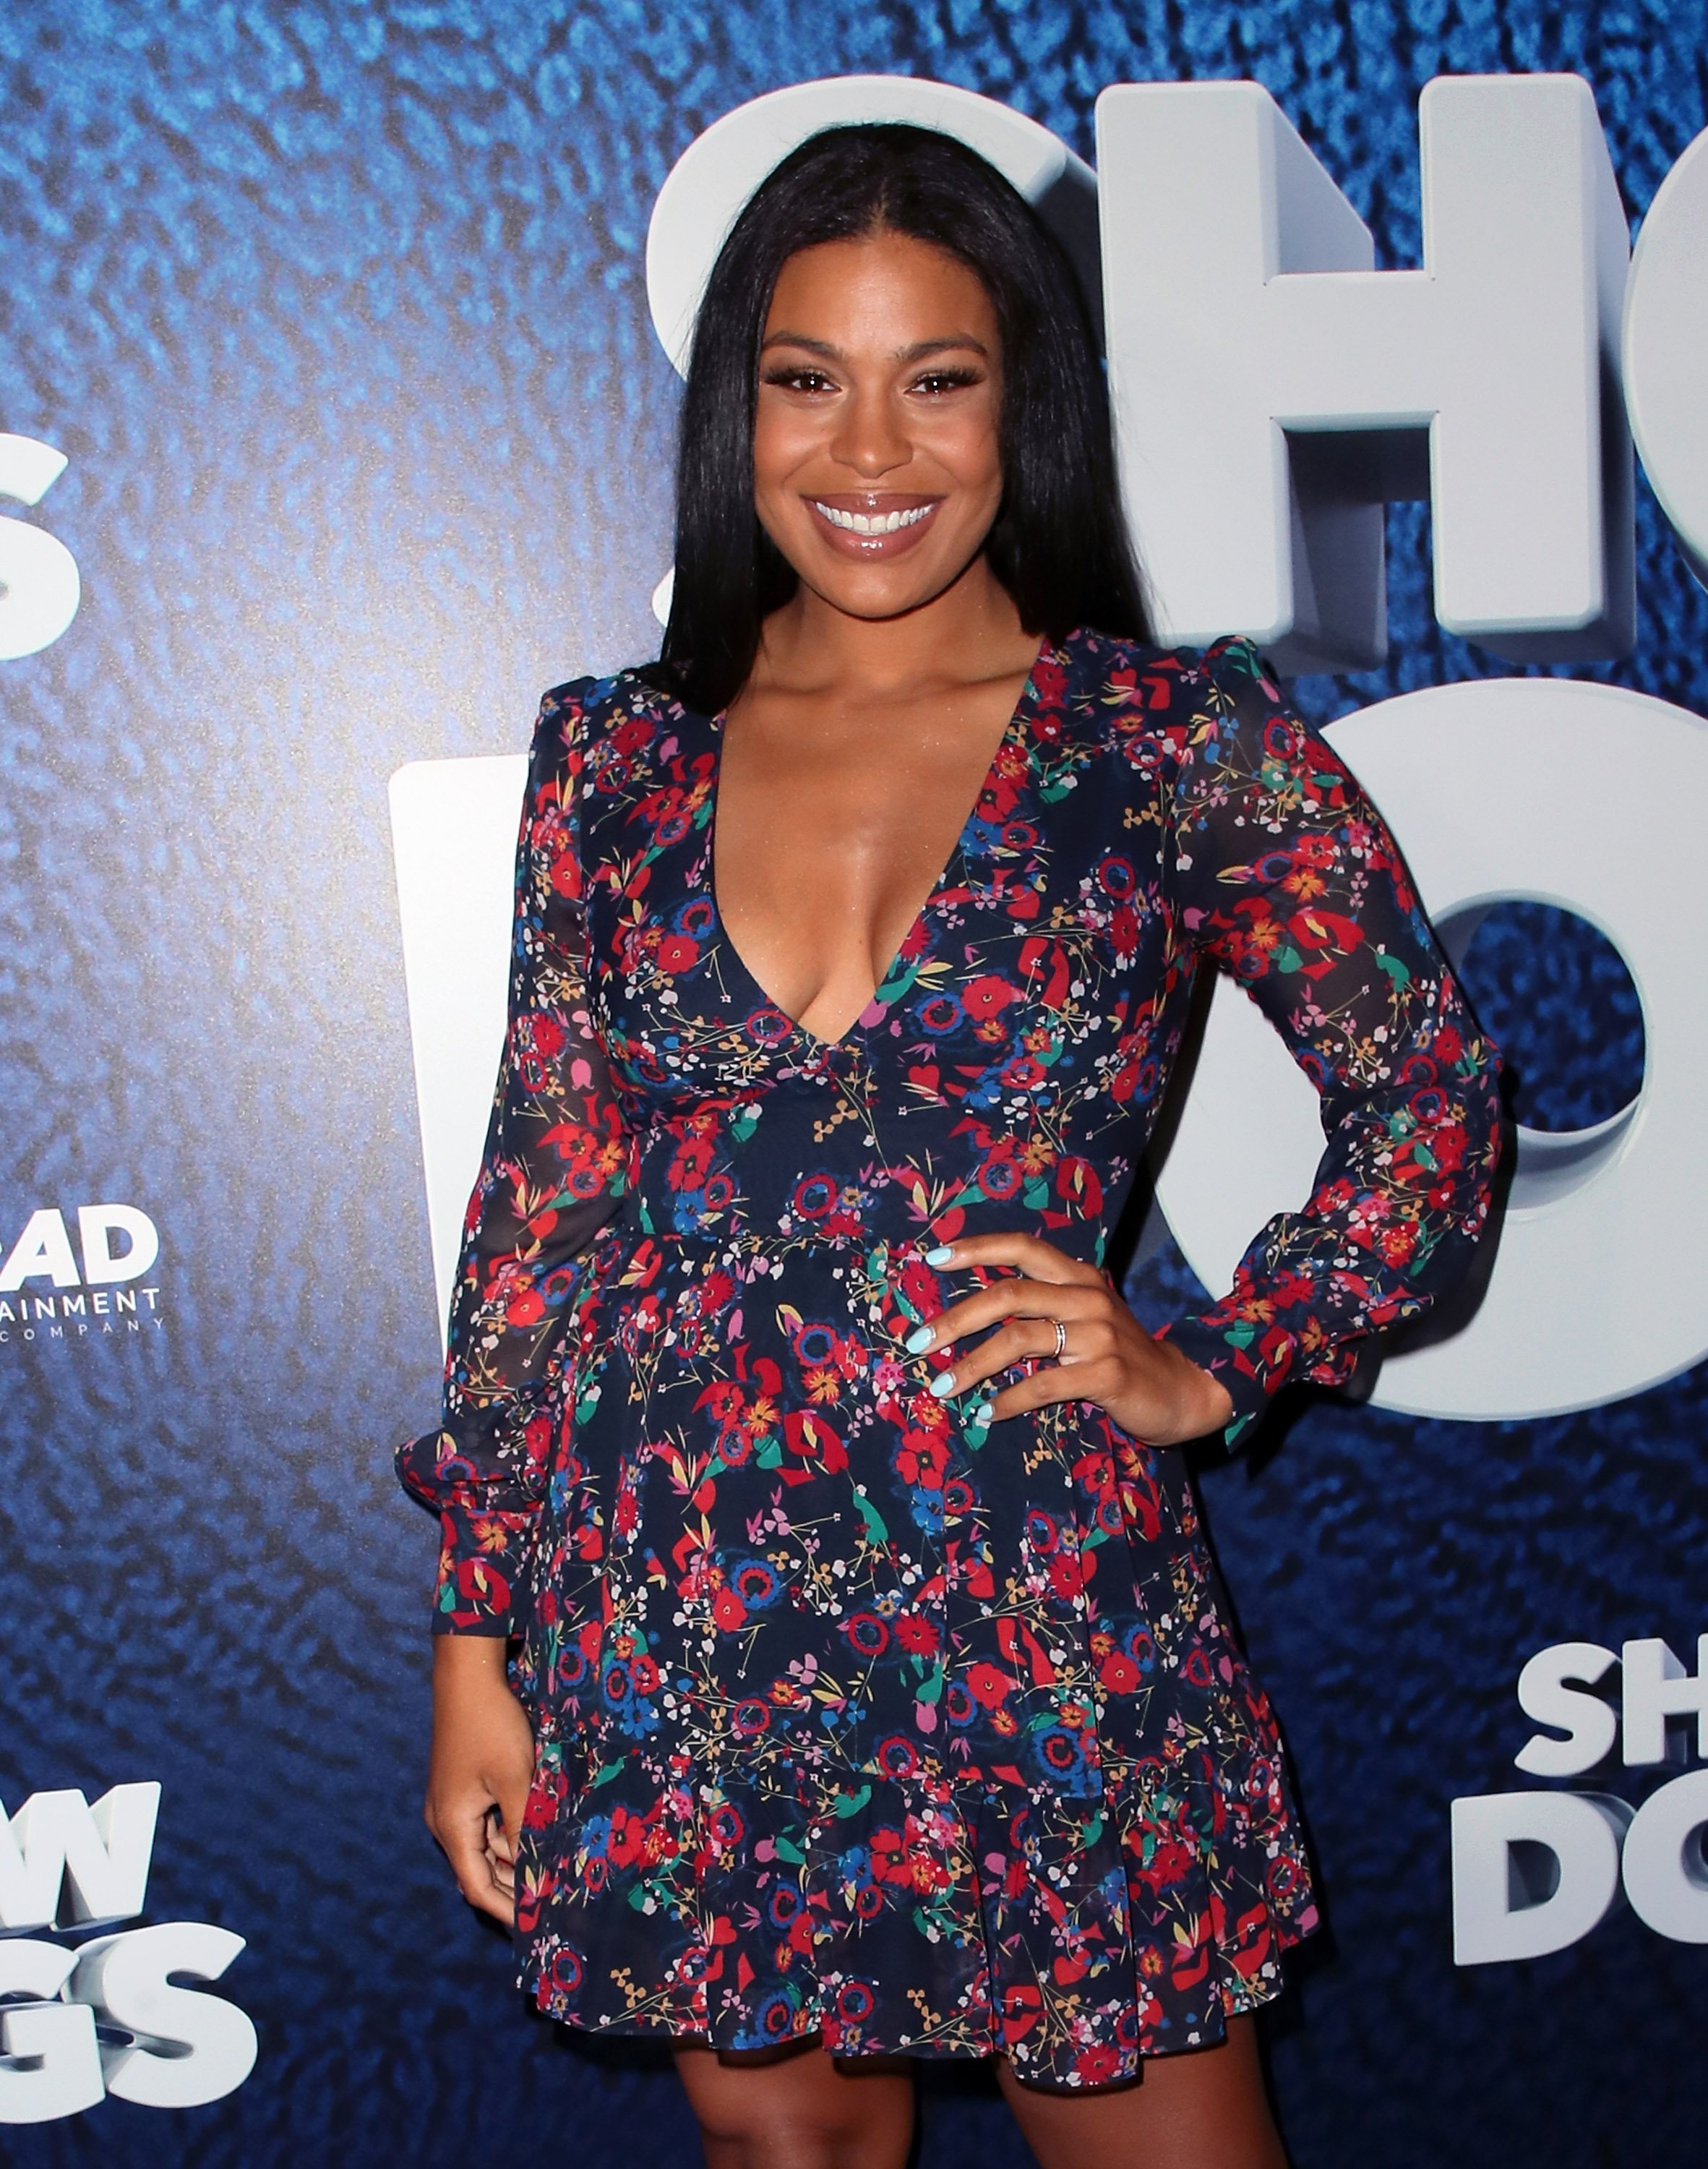 """Jordin Sparks at the premier of """"Show Dogs,"""" May 5, 2018.   Photo: Getty Images/Global Images of Ukraine"""